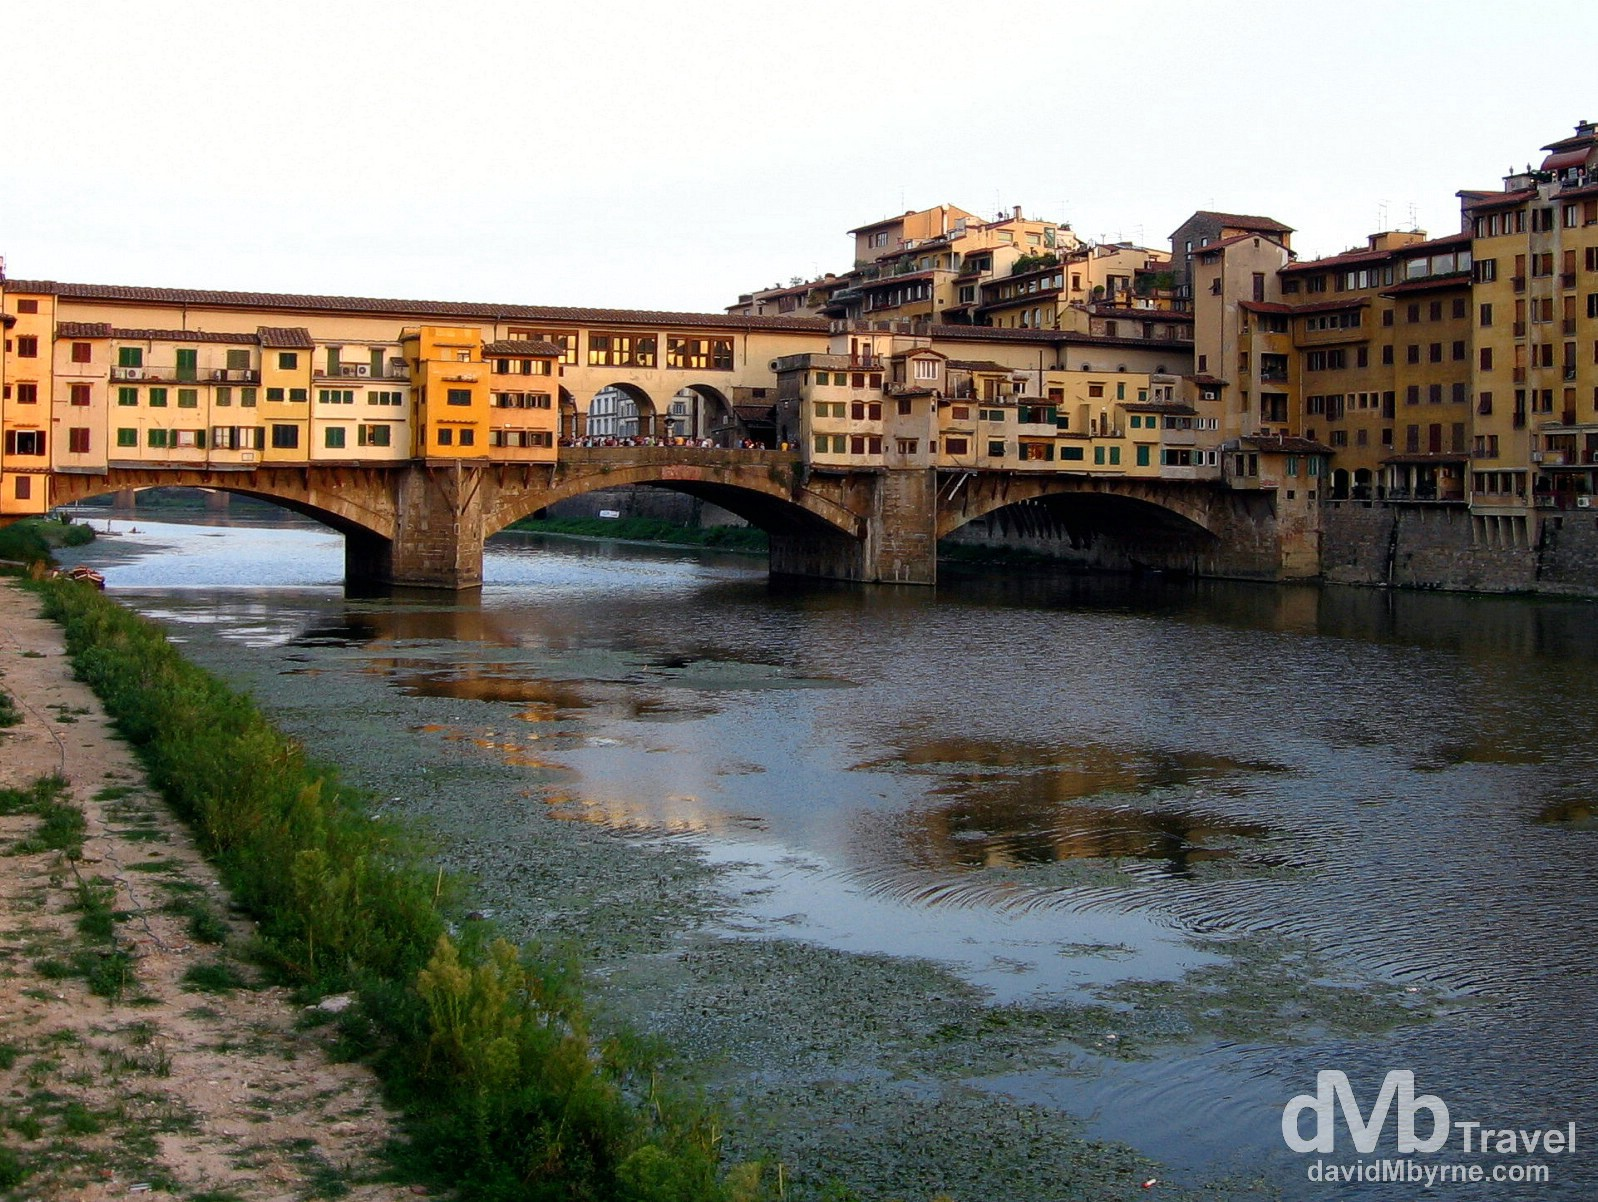 The Ponte Vecchio bridge over the Arno River in Florence, Tuscany, Italy. August 28th, 2007.